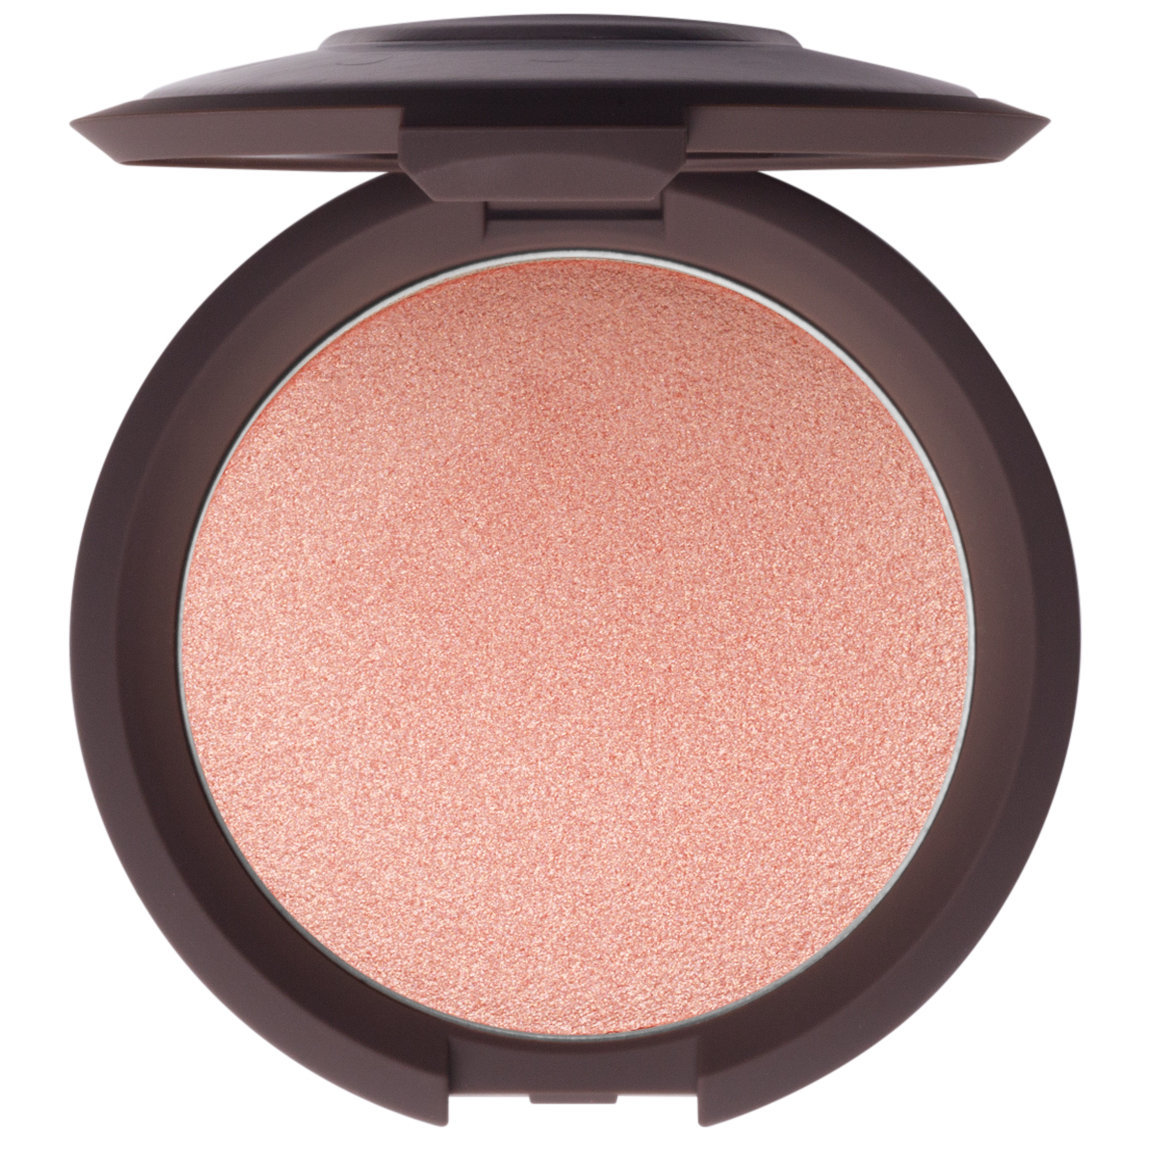 BECCA Shimmering Skin Perfector Pressed Rose Quartz product swatch.